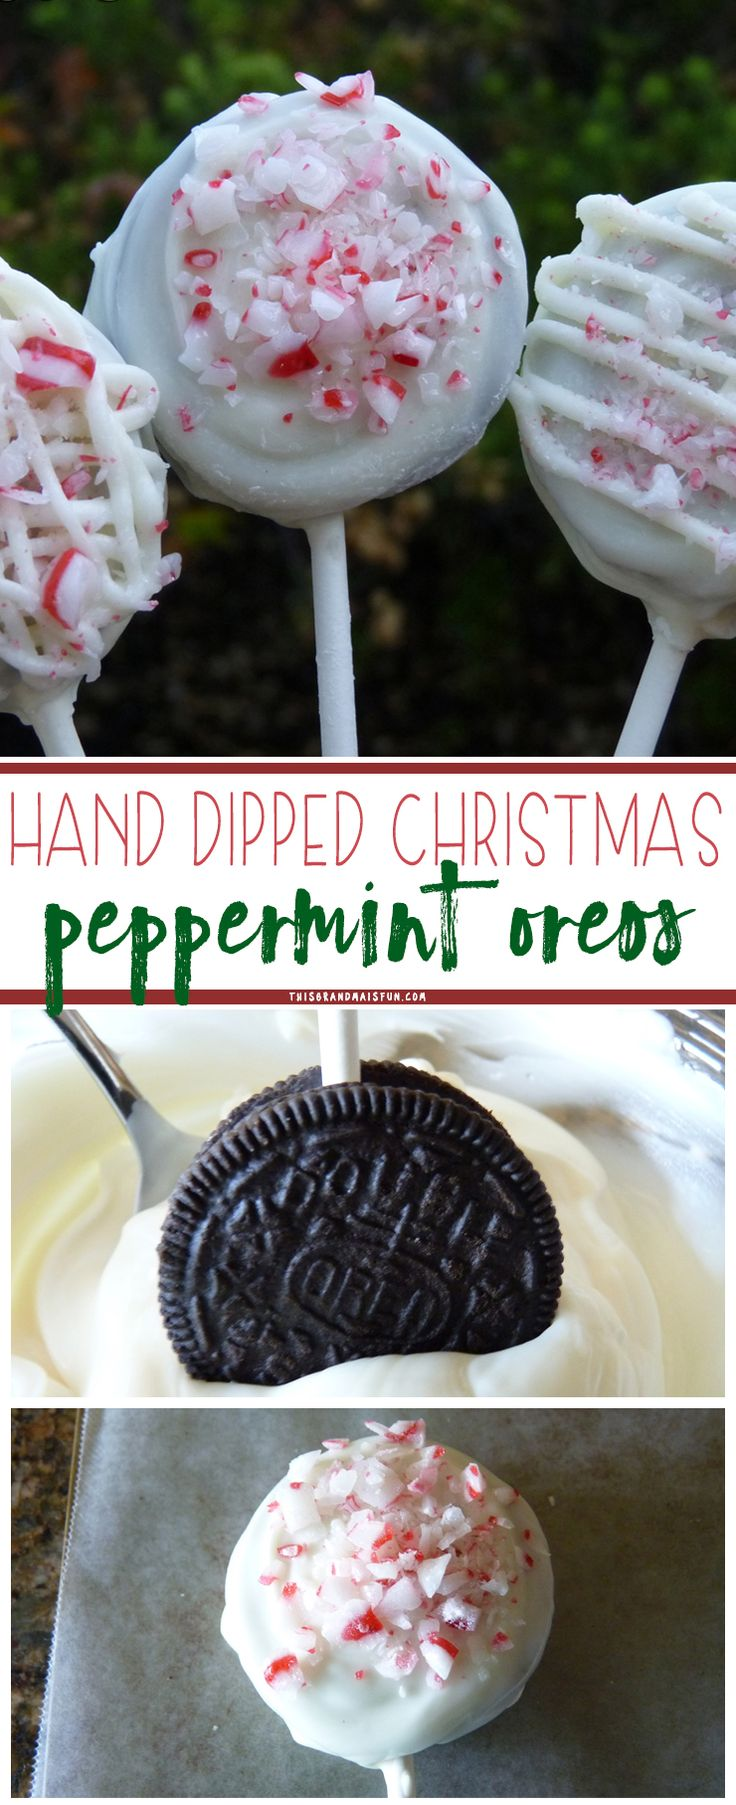 Peppermint Oreo Pops are quick and easy to make, no baking required. A perfect gift for friends and neighbors, be careful they are addicting!